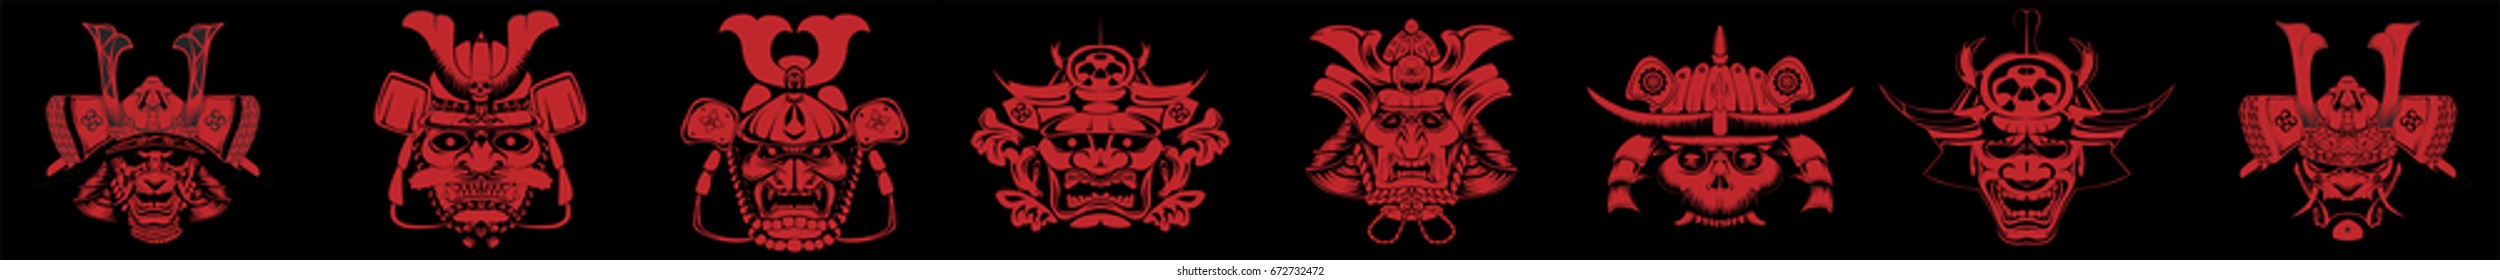 A Japanese samurai masks and helmet illustration